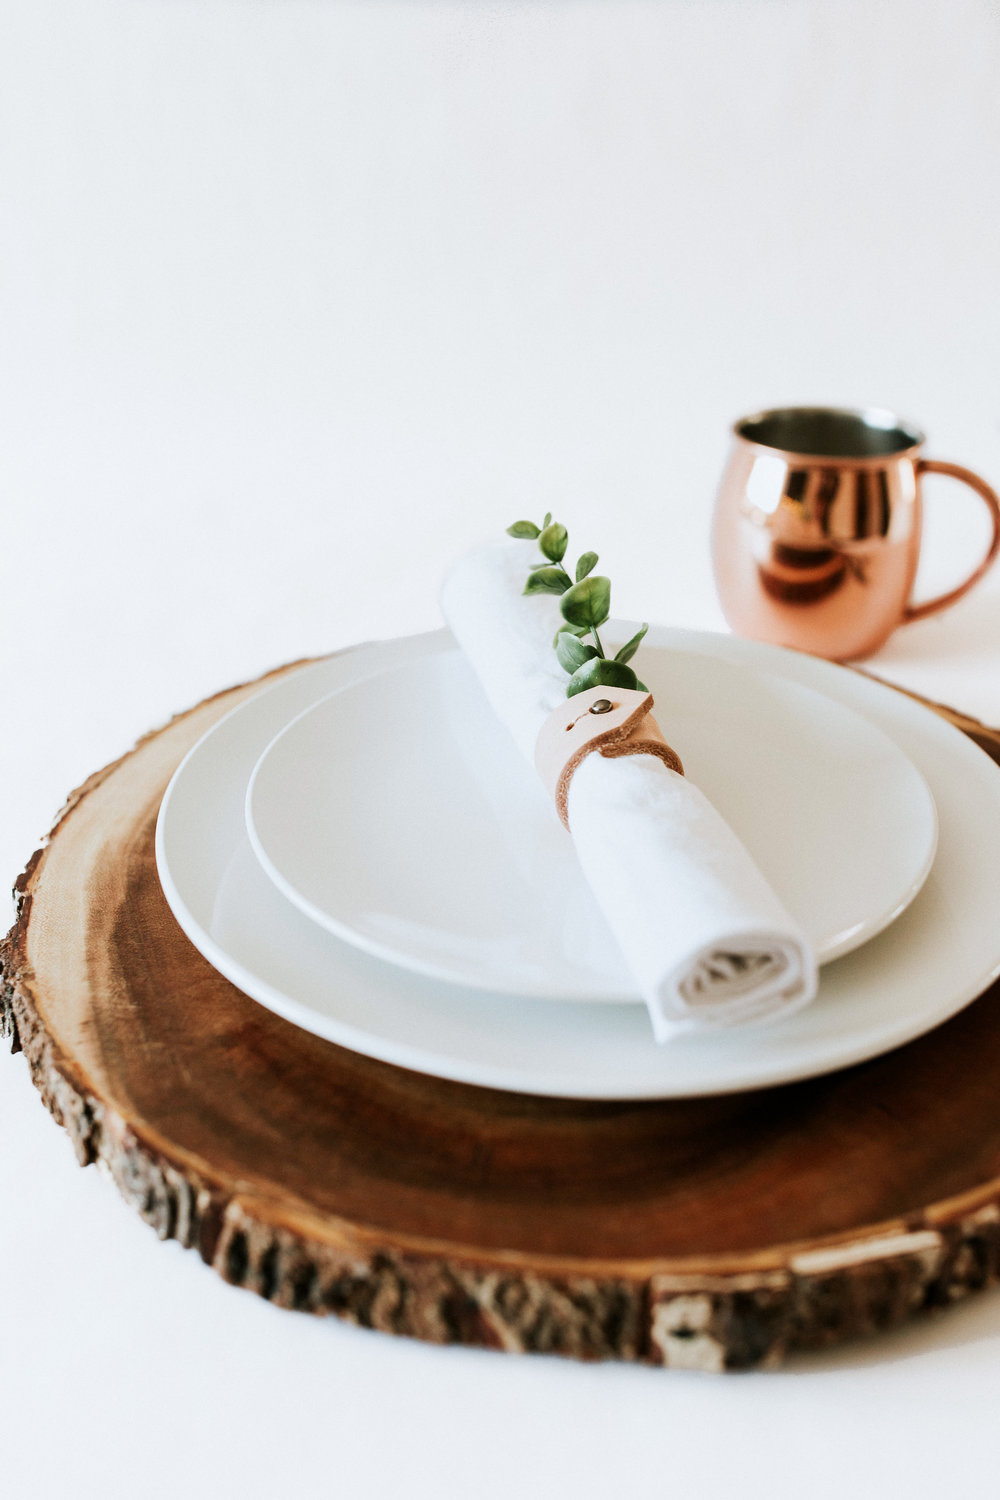 How to create / DIY a natural minimal table setting - wood charger white plates & HOW TO CREATE A NATURE INSPIRED TABLE SETTING u2014 Refined Design